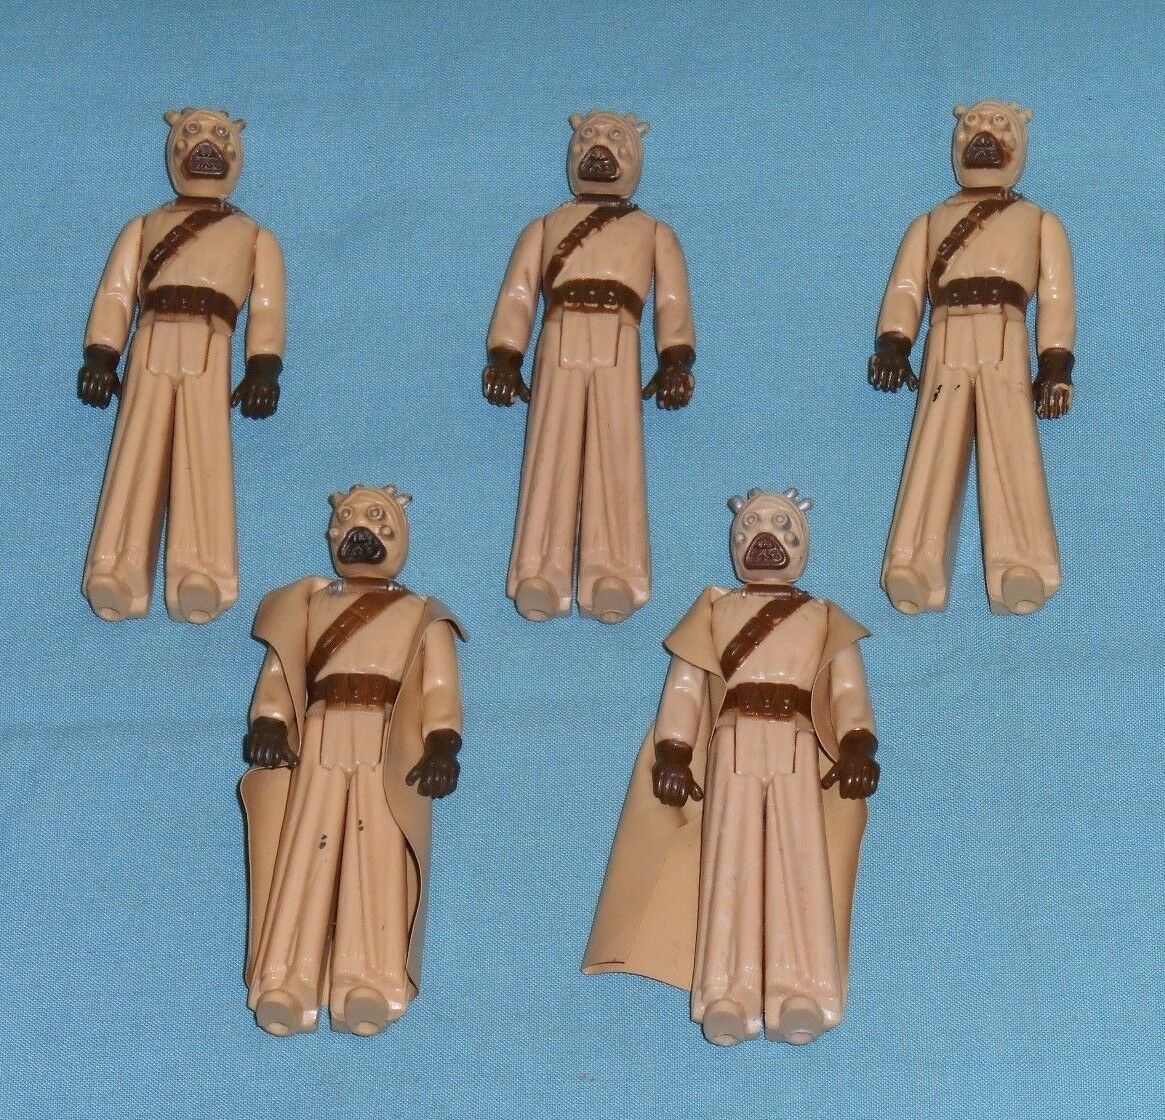 Vintage STAR WARS SANDPERSON LOT x5 action figures Sandpeople Tusken Raider